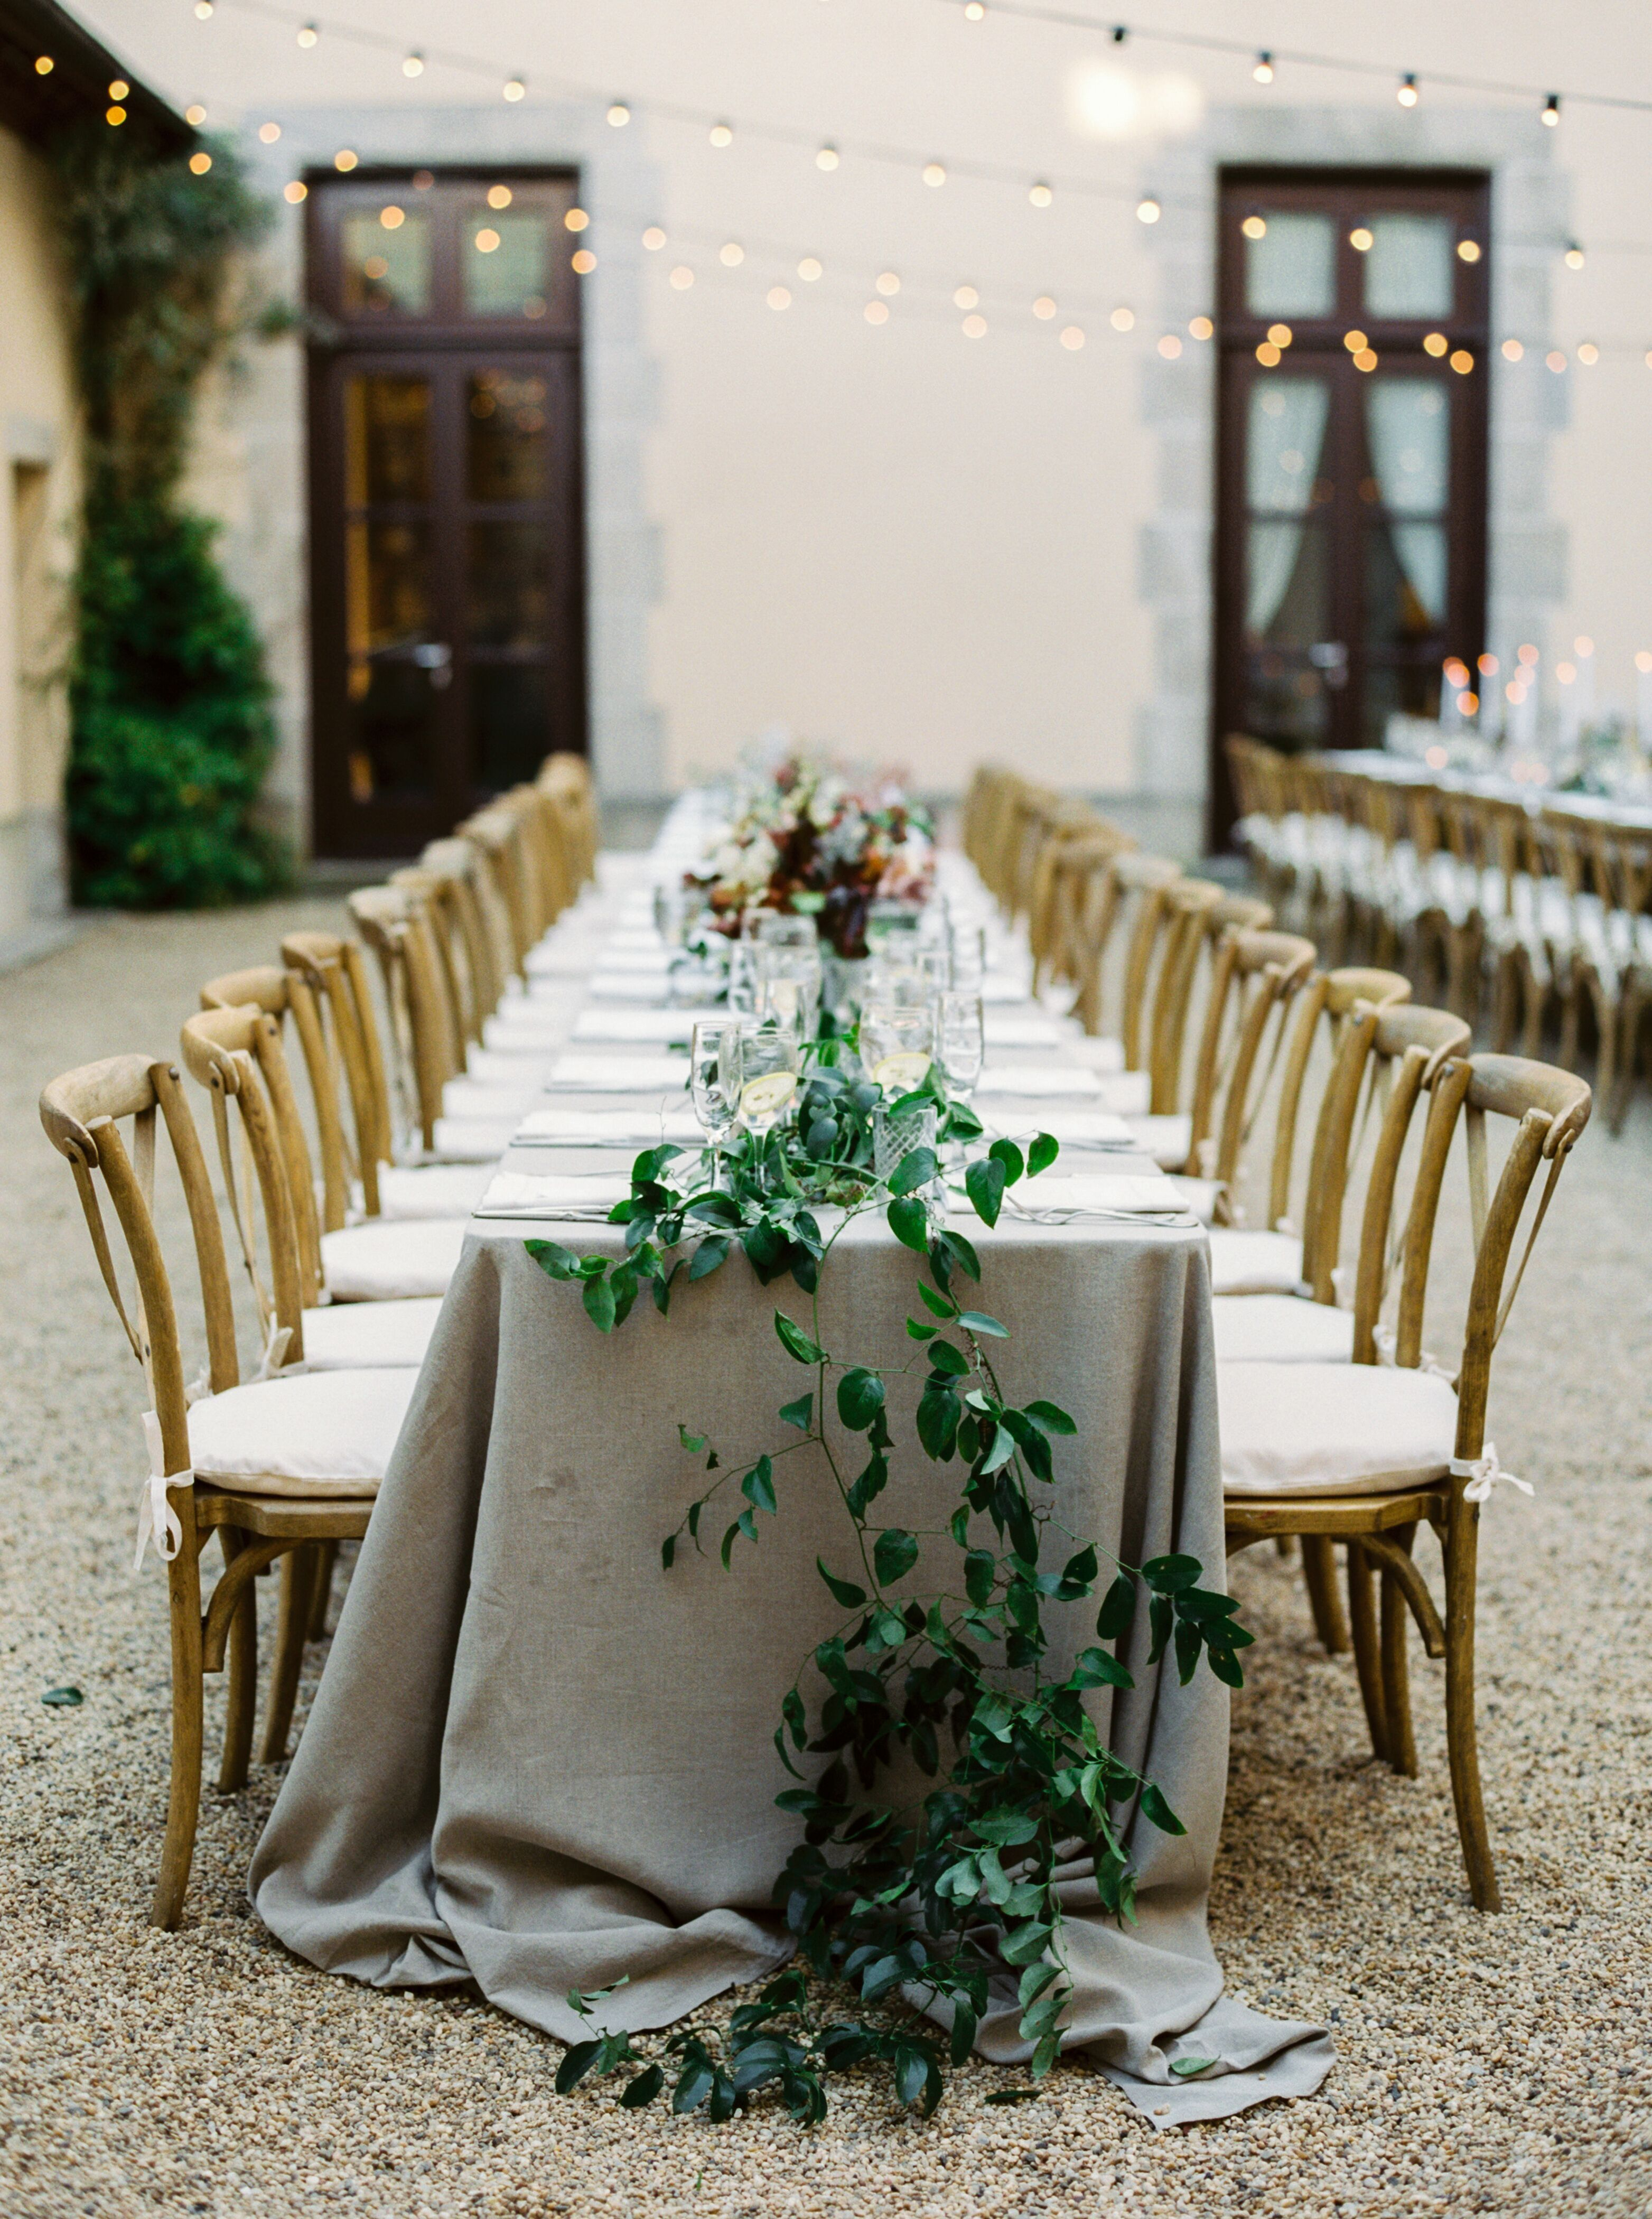 Greenery Tablescape At Outdoor Hamptons Wedding At Oheka Castle In Huntington New York Brought To Li Hamptons Wedding Oheka Castle Castle Wedding Inspiration